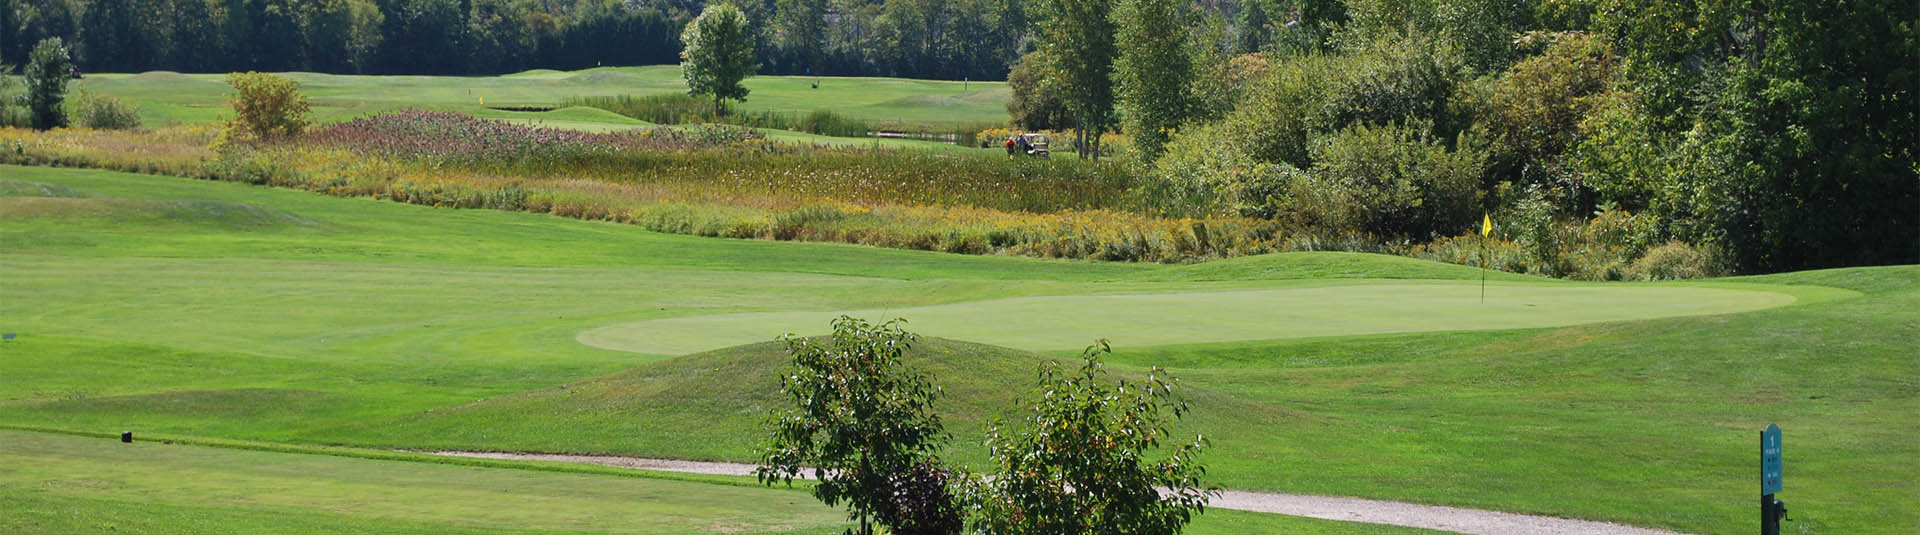 A group of golfers are seen in the distance on the course at Catamount Country Club